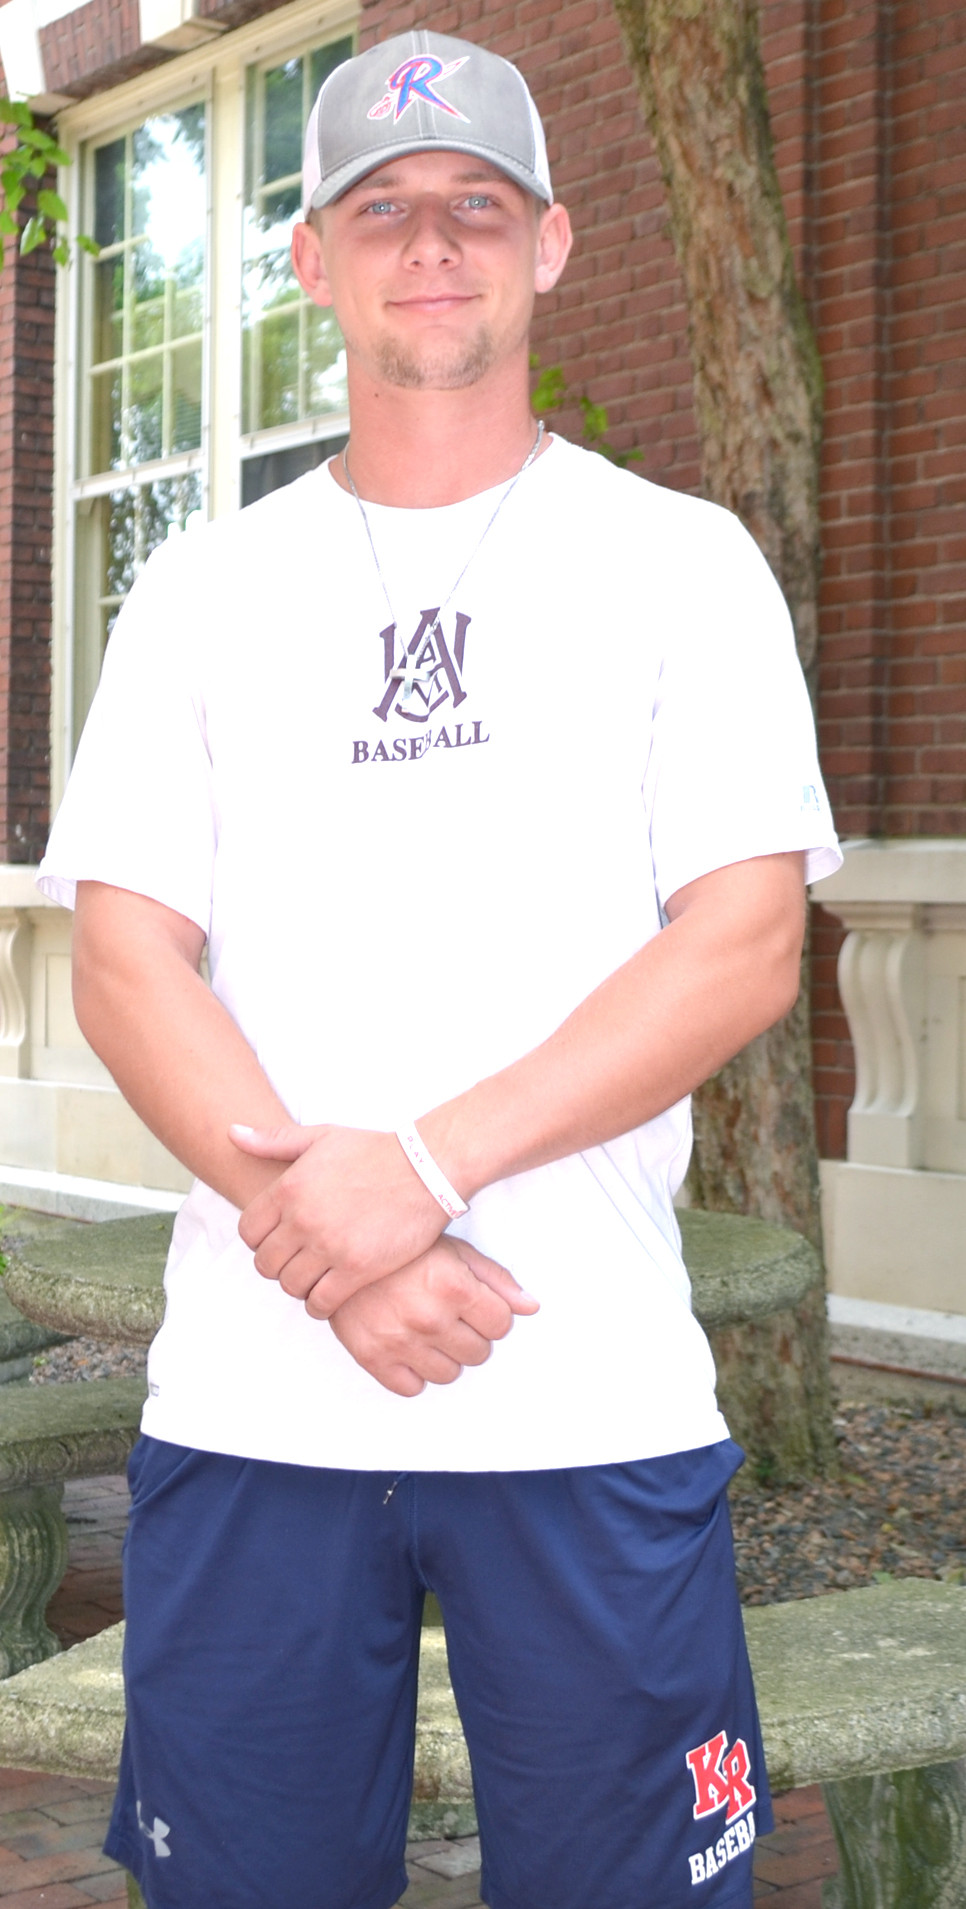 J.T. O'REEL hopes to continue playing baseball in an independent professional league. The Woodford County High School graduate is pictured wearing shorts from his past as a Kentucky Rocker, a shirt from playing at Alabama A&M and a cap from his junior college days at Roane State. (Photo by Bob Vlach)